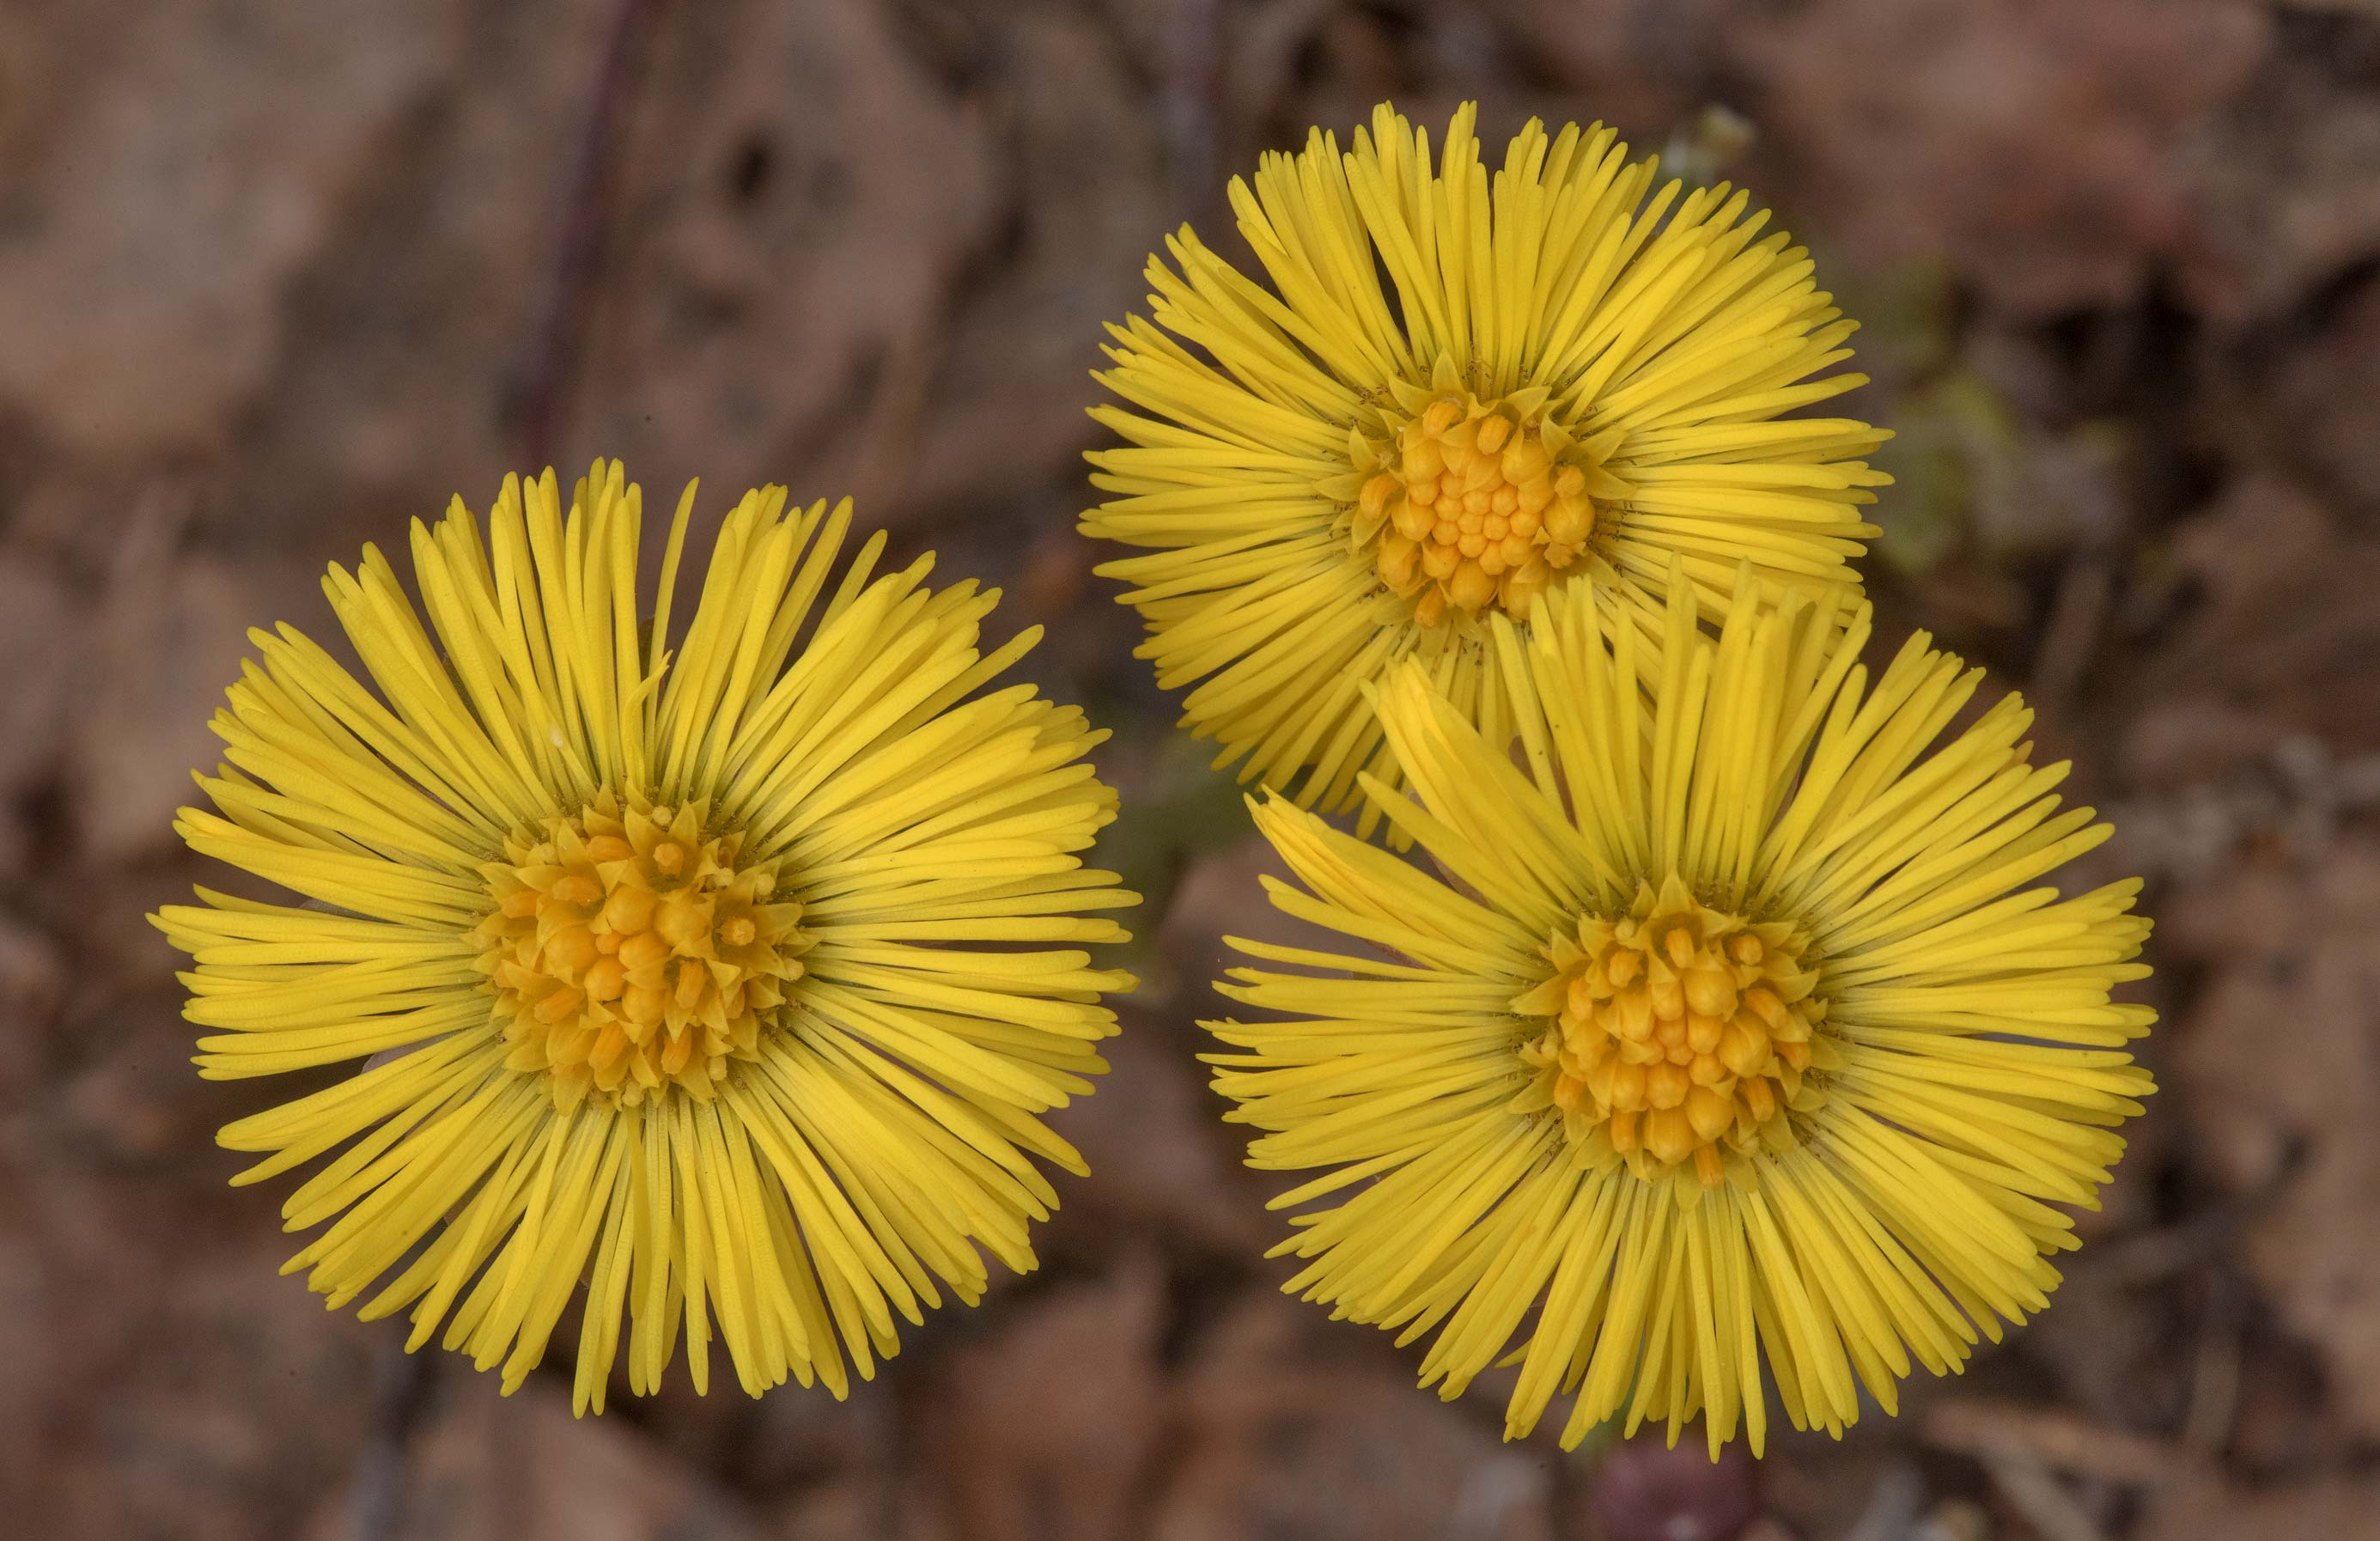 Spring flowers of Coltsfoot (Tussilago farfara...north-west from St.Petersburg, Russia